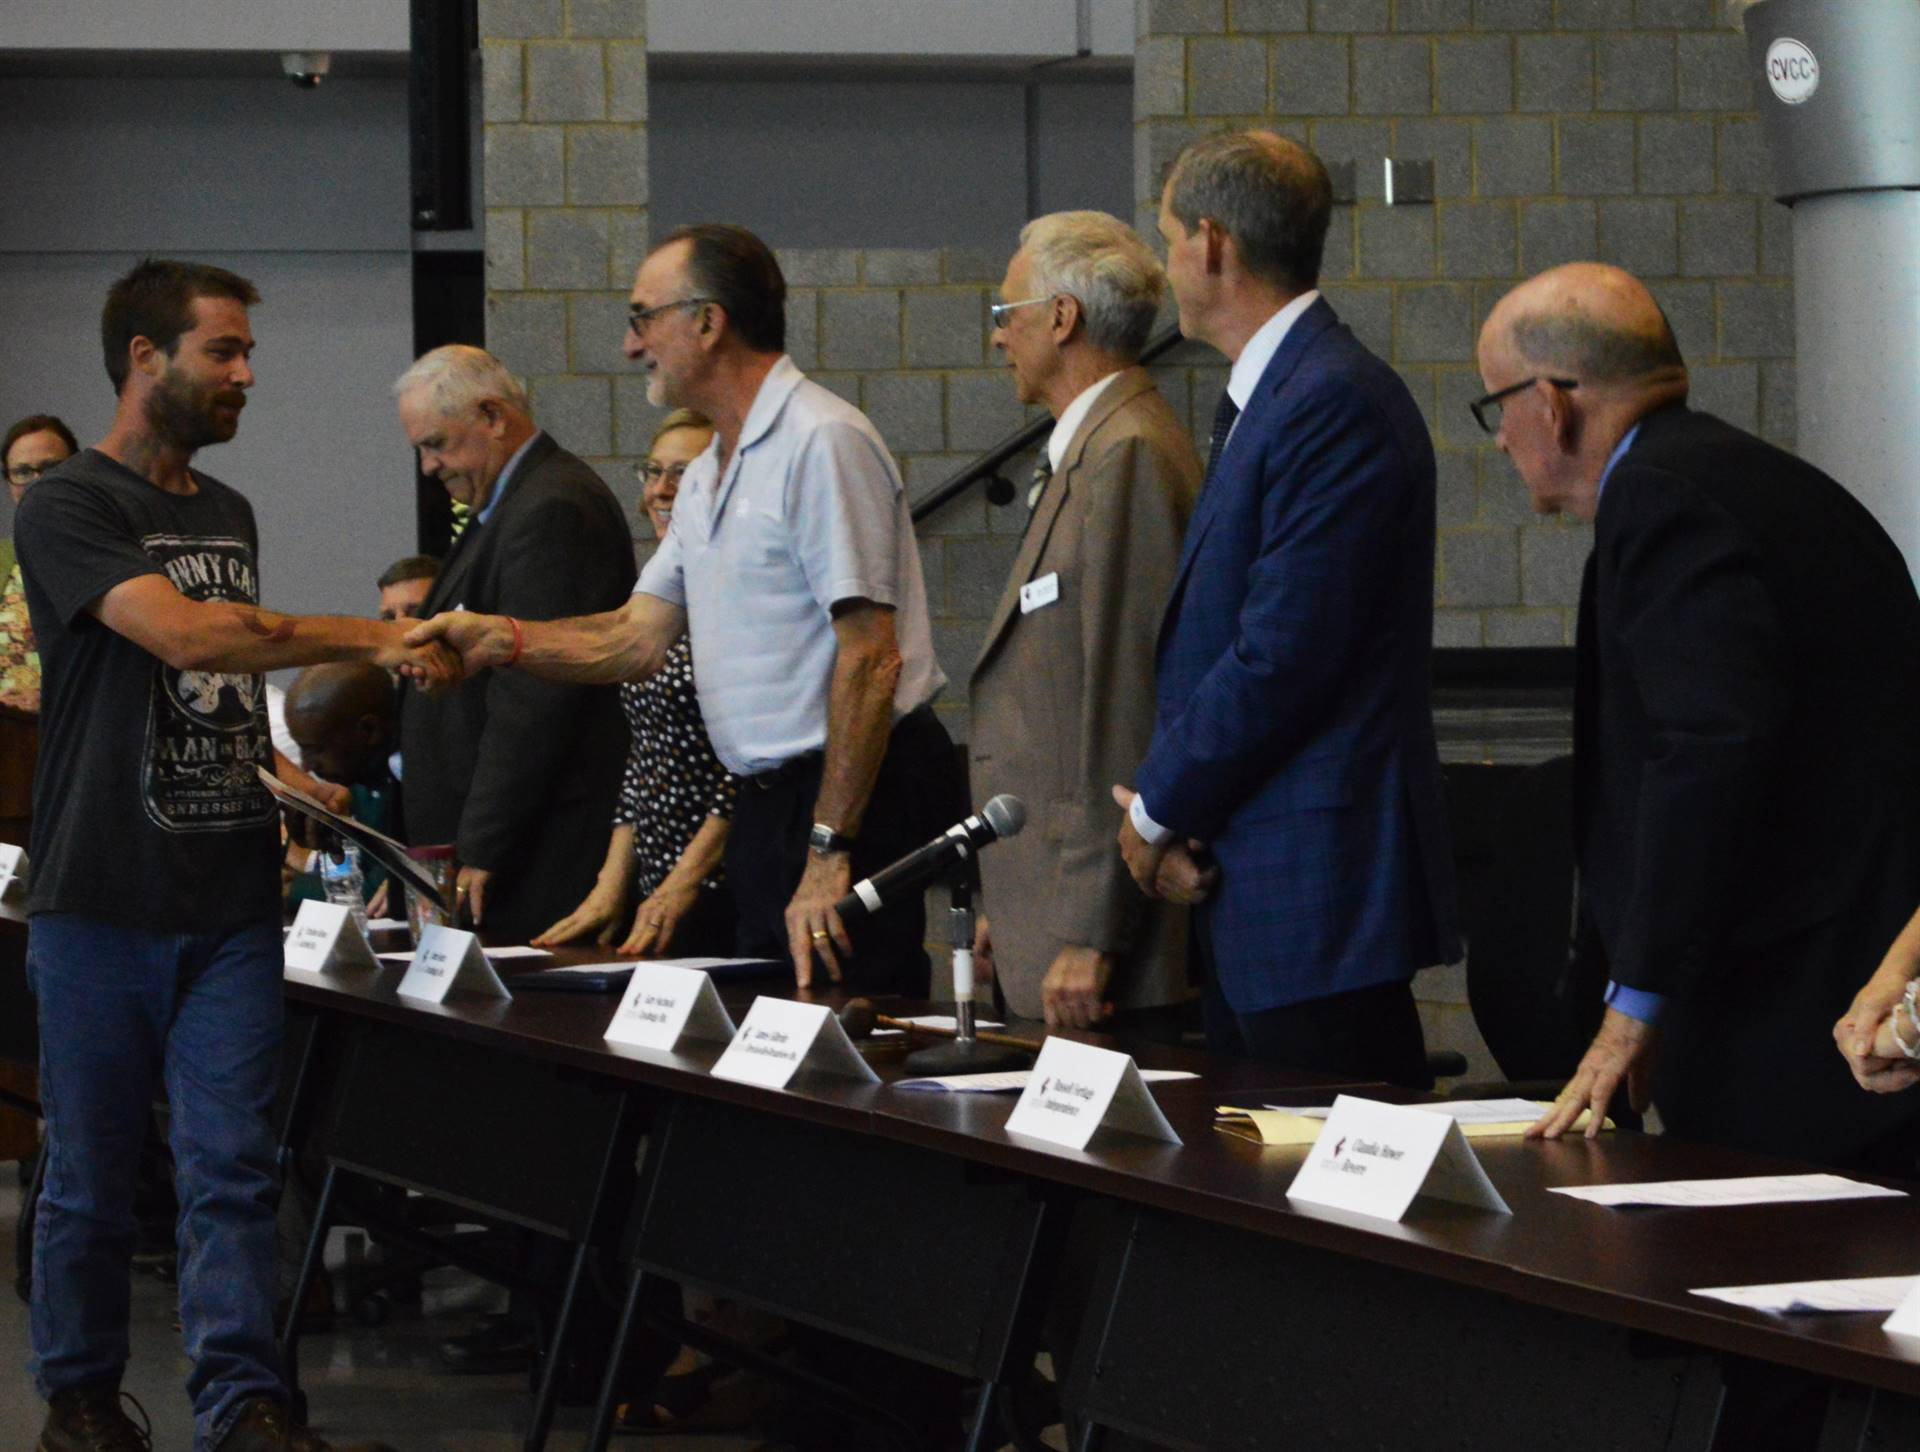 Adult student shaking hands with Board members